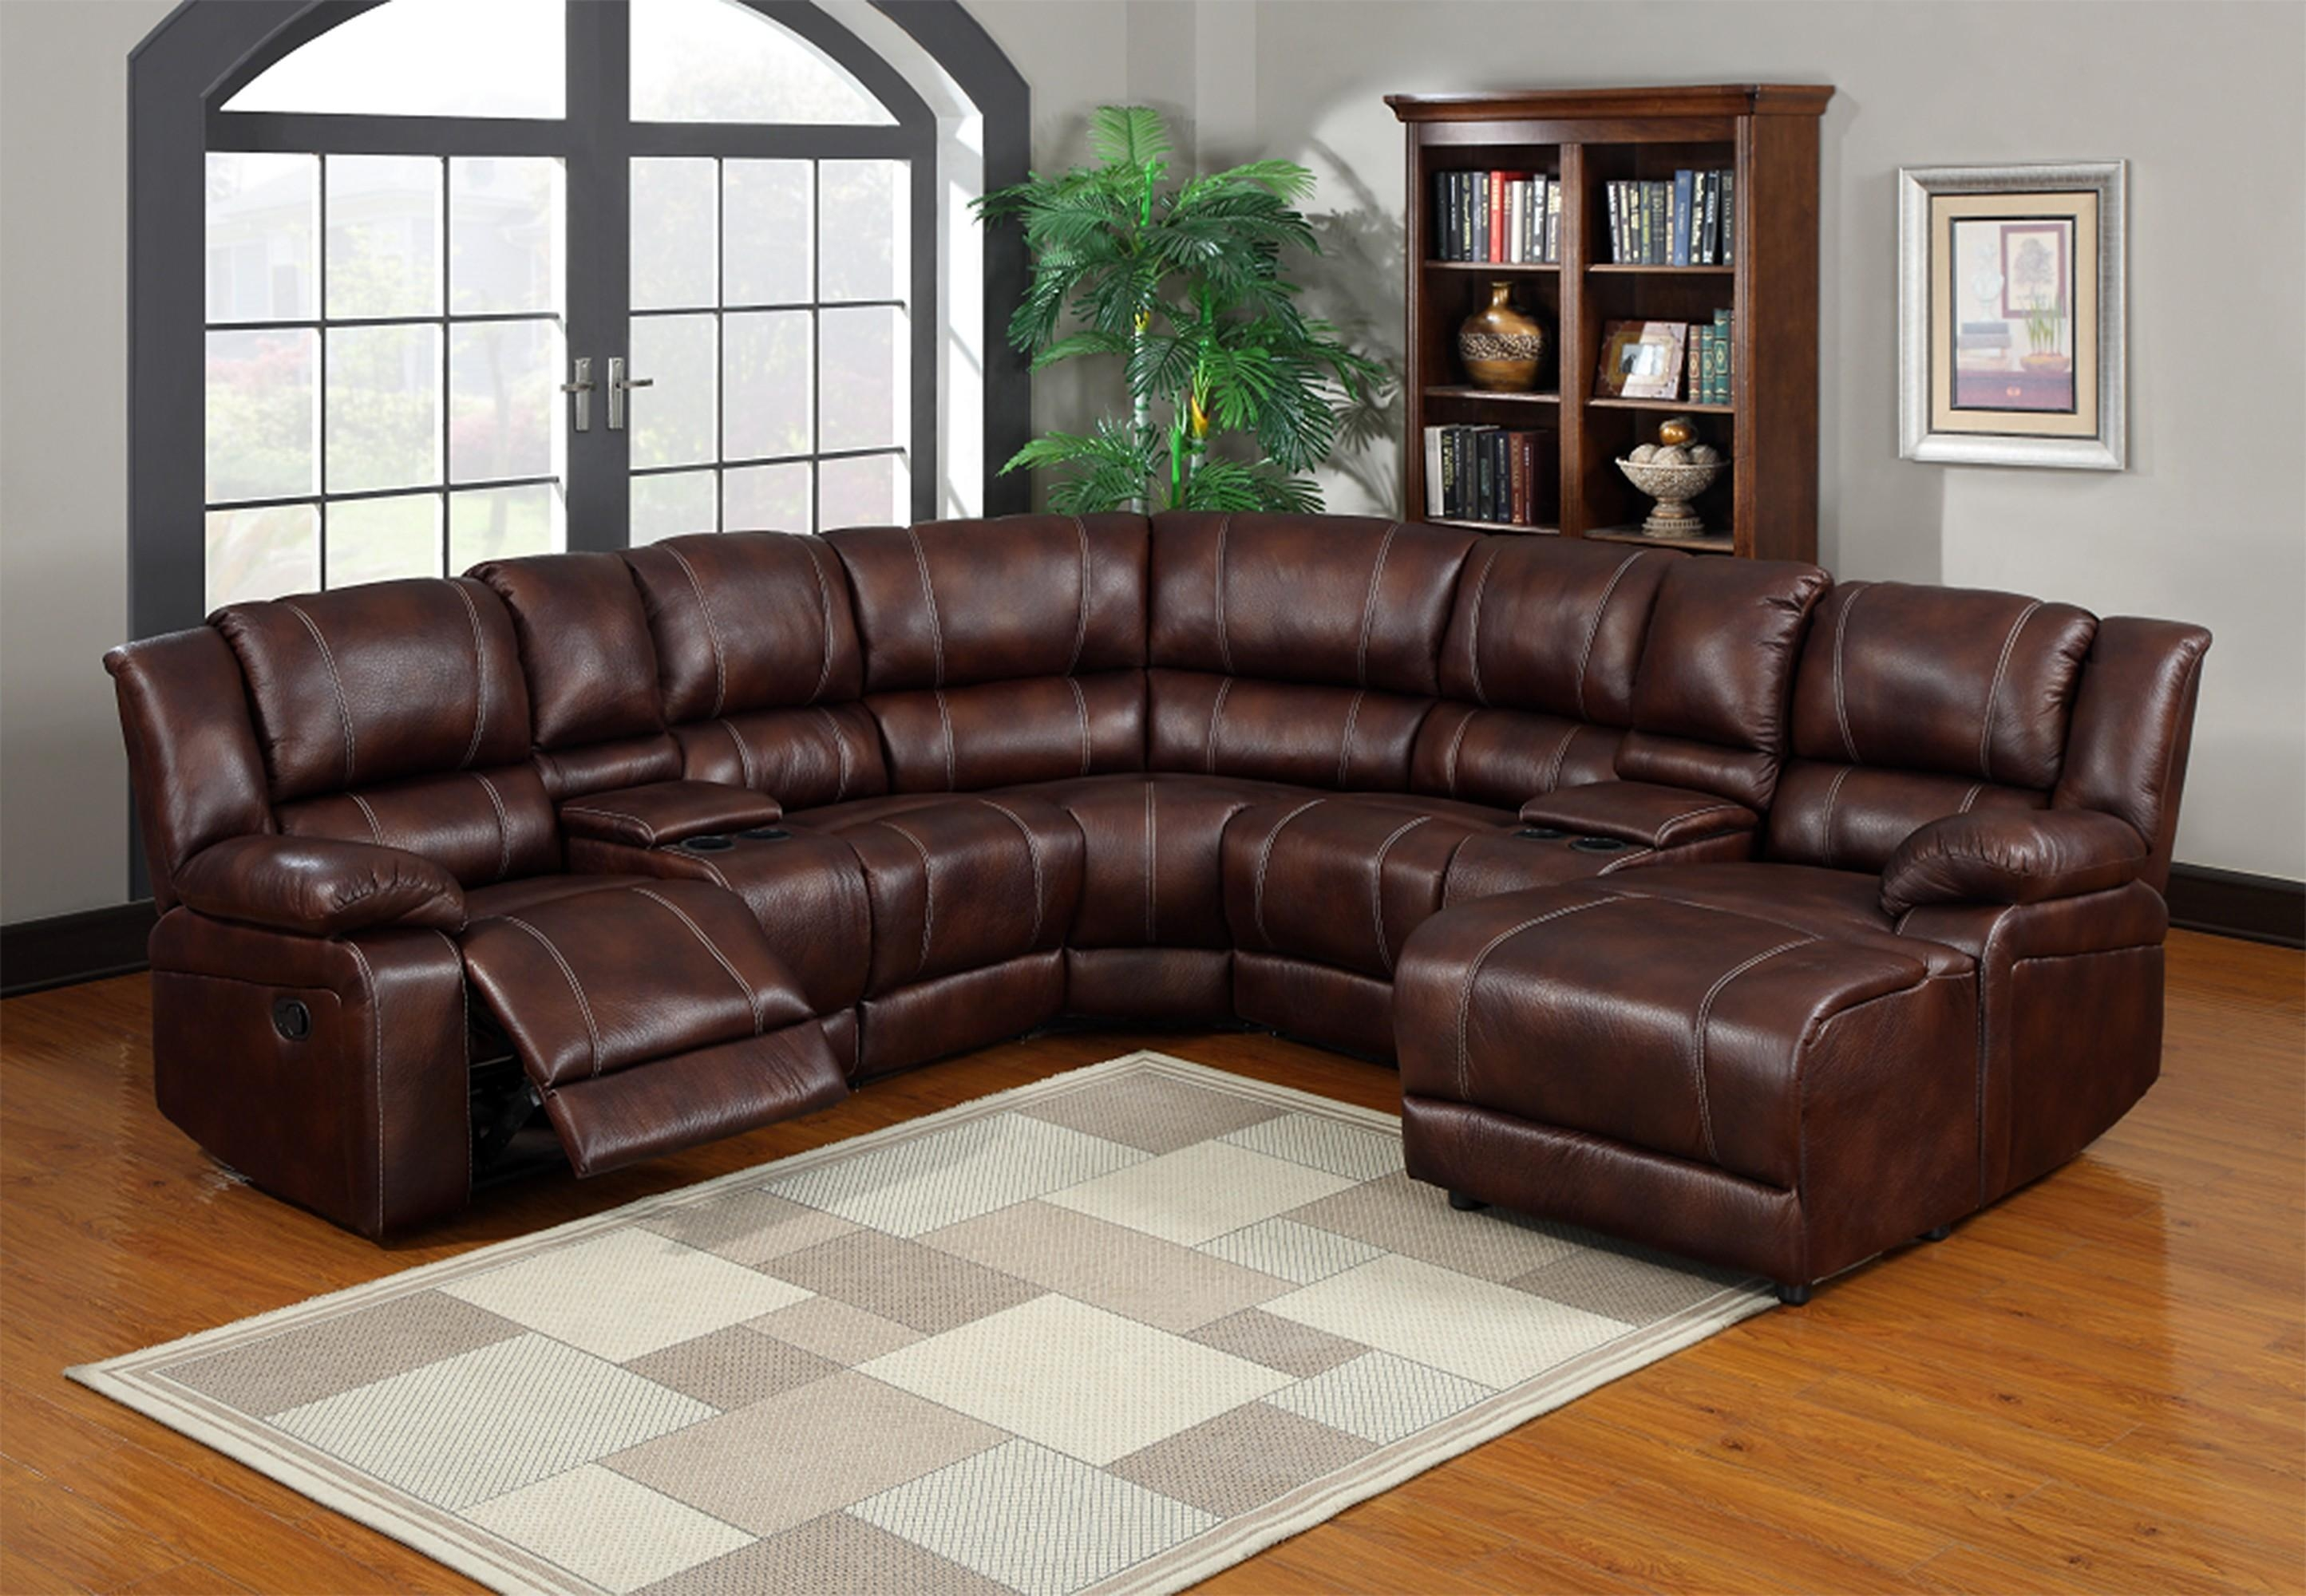 Motion Sofas And Sectionals – Leather Sectional Sofa For Leather Motion Sectional Sofa (View 2 of 20)